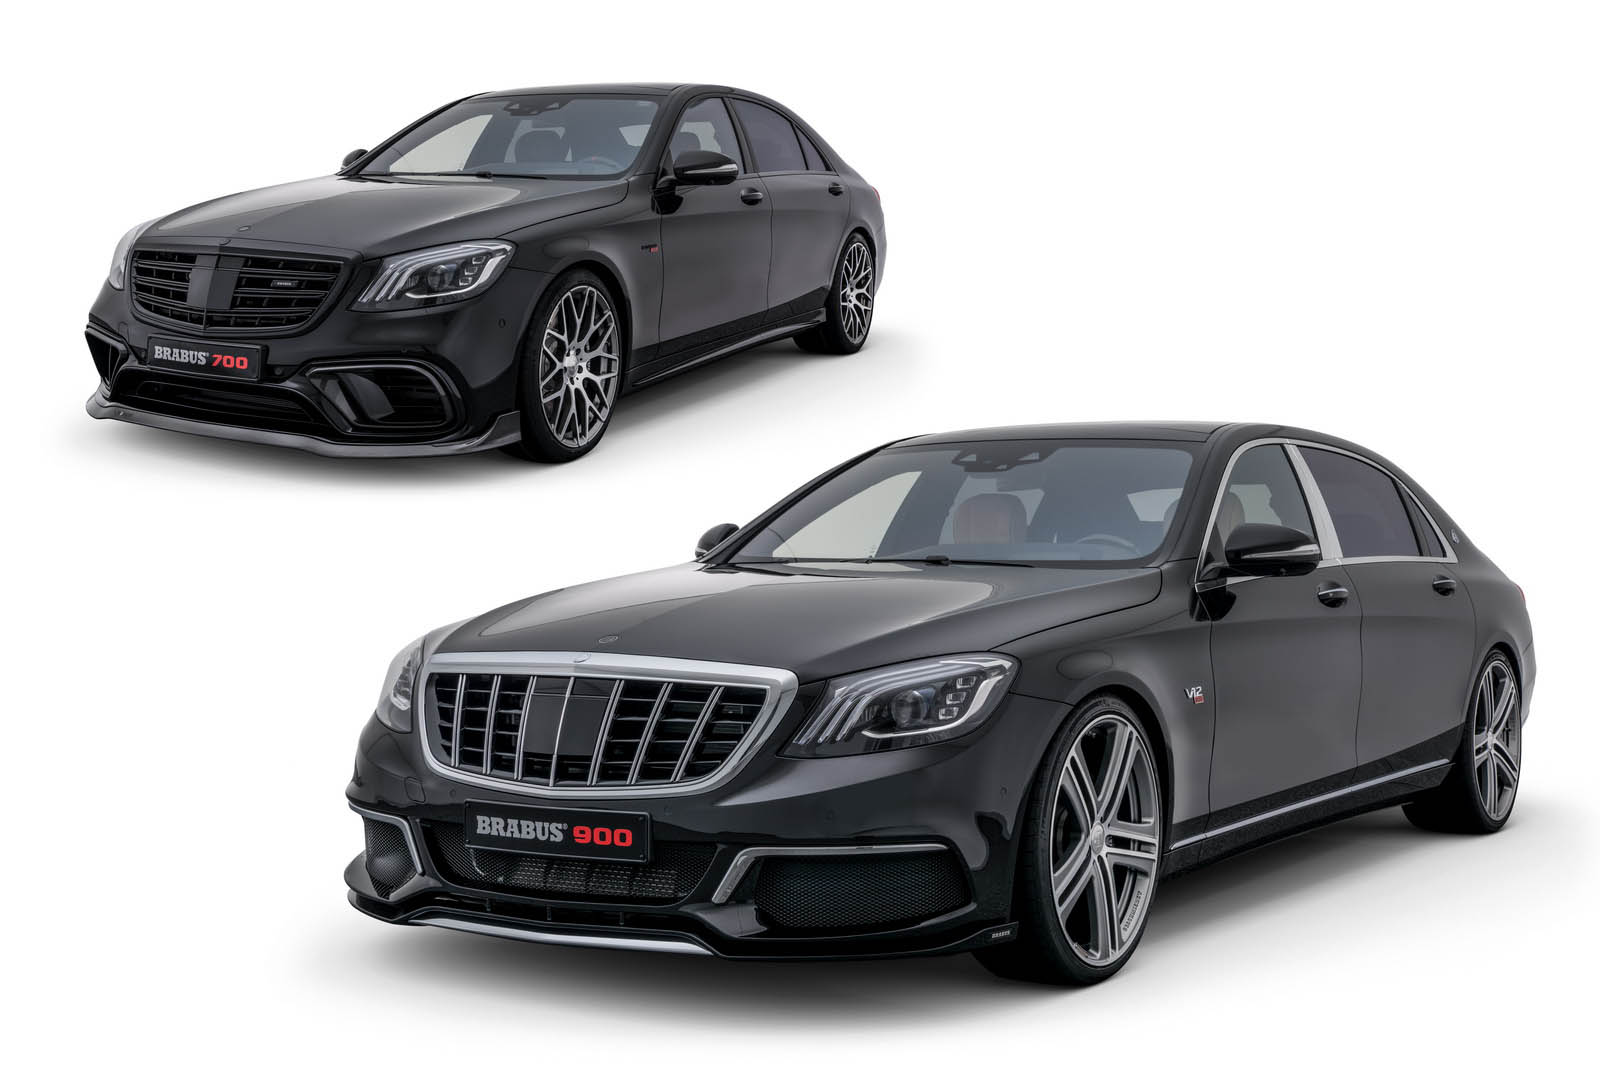 maybach s650 not enough check out the new brabus 900 carscoops. Black Bedroom Furniture Sets. Home Design Ideas